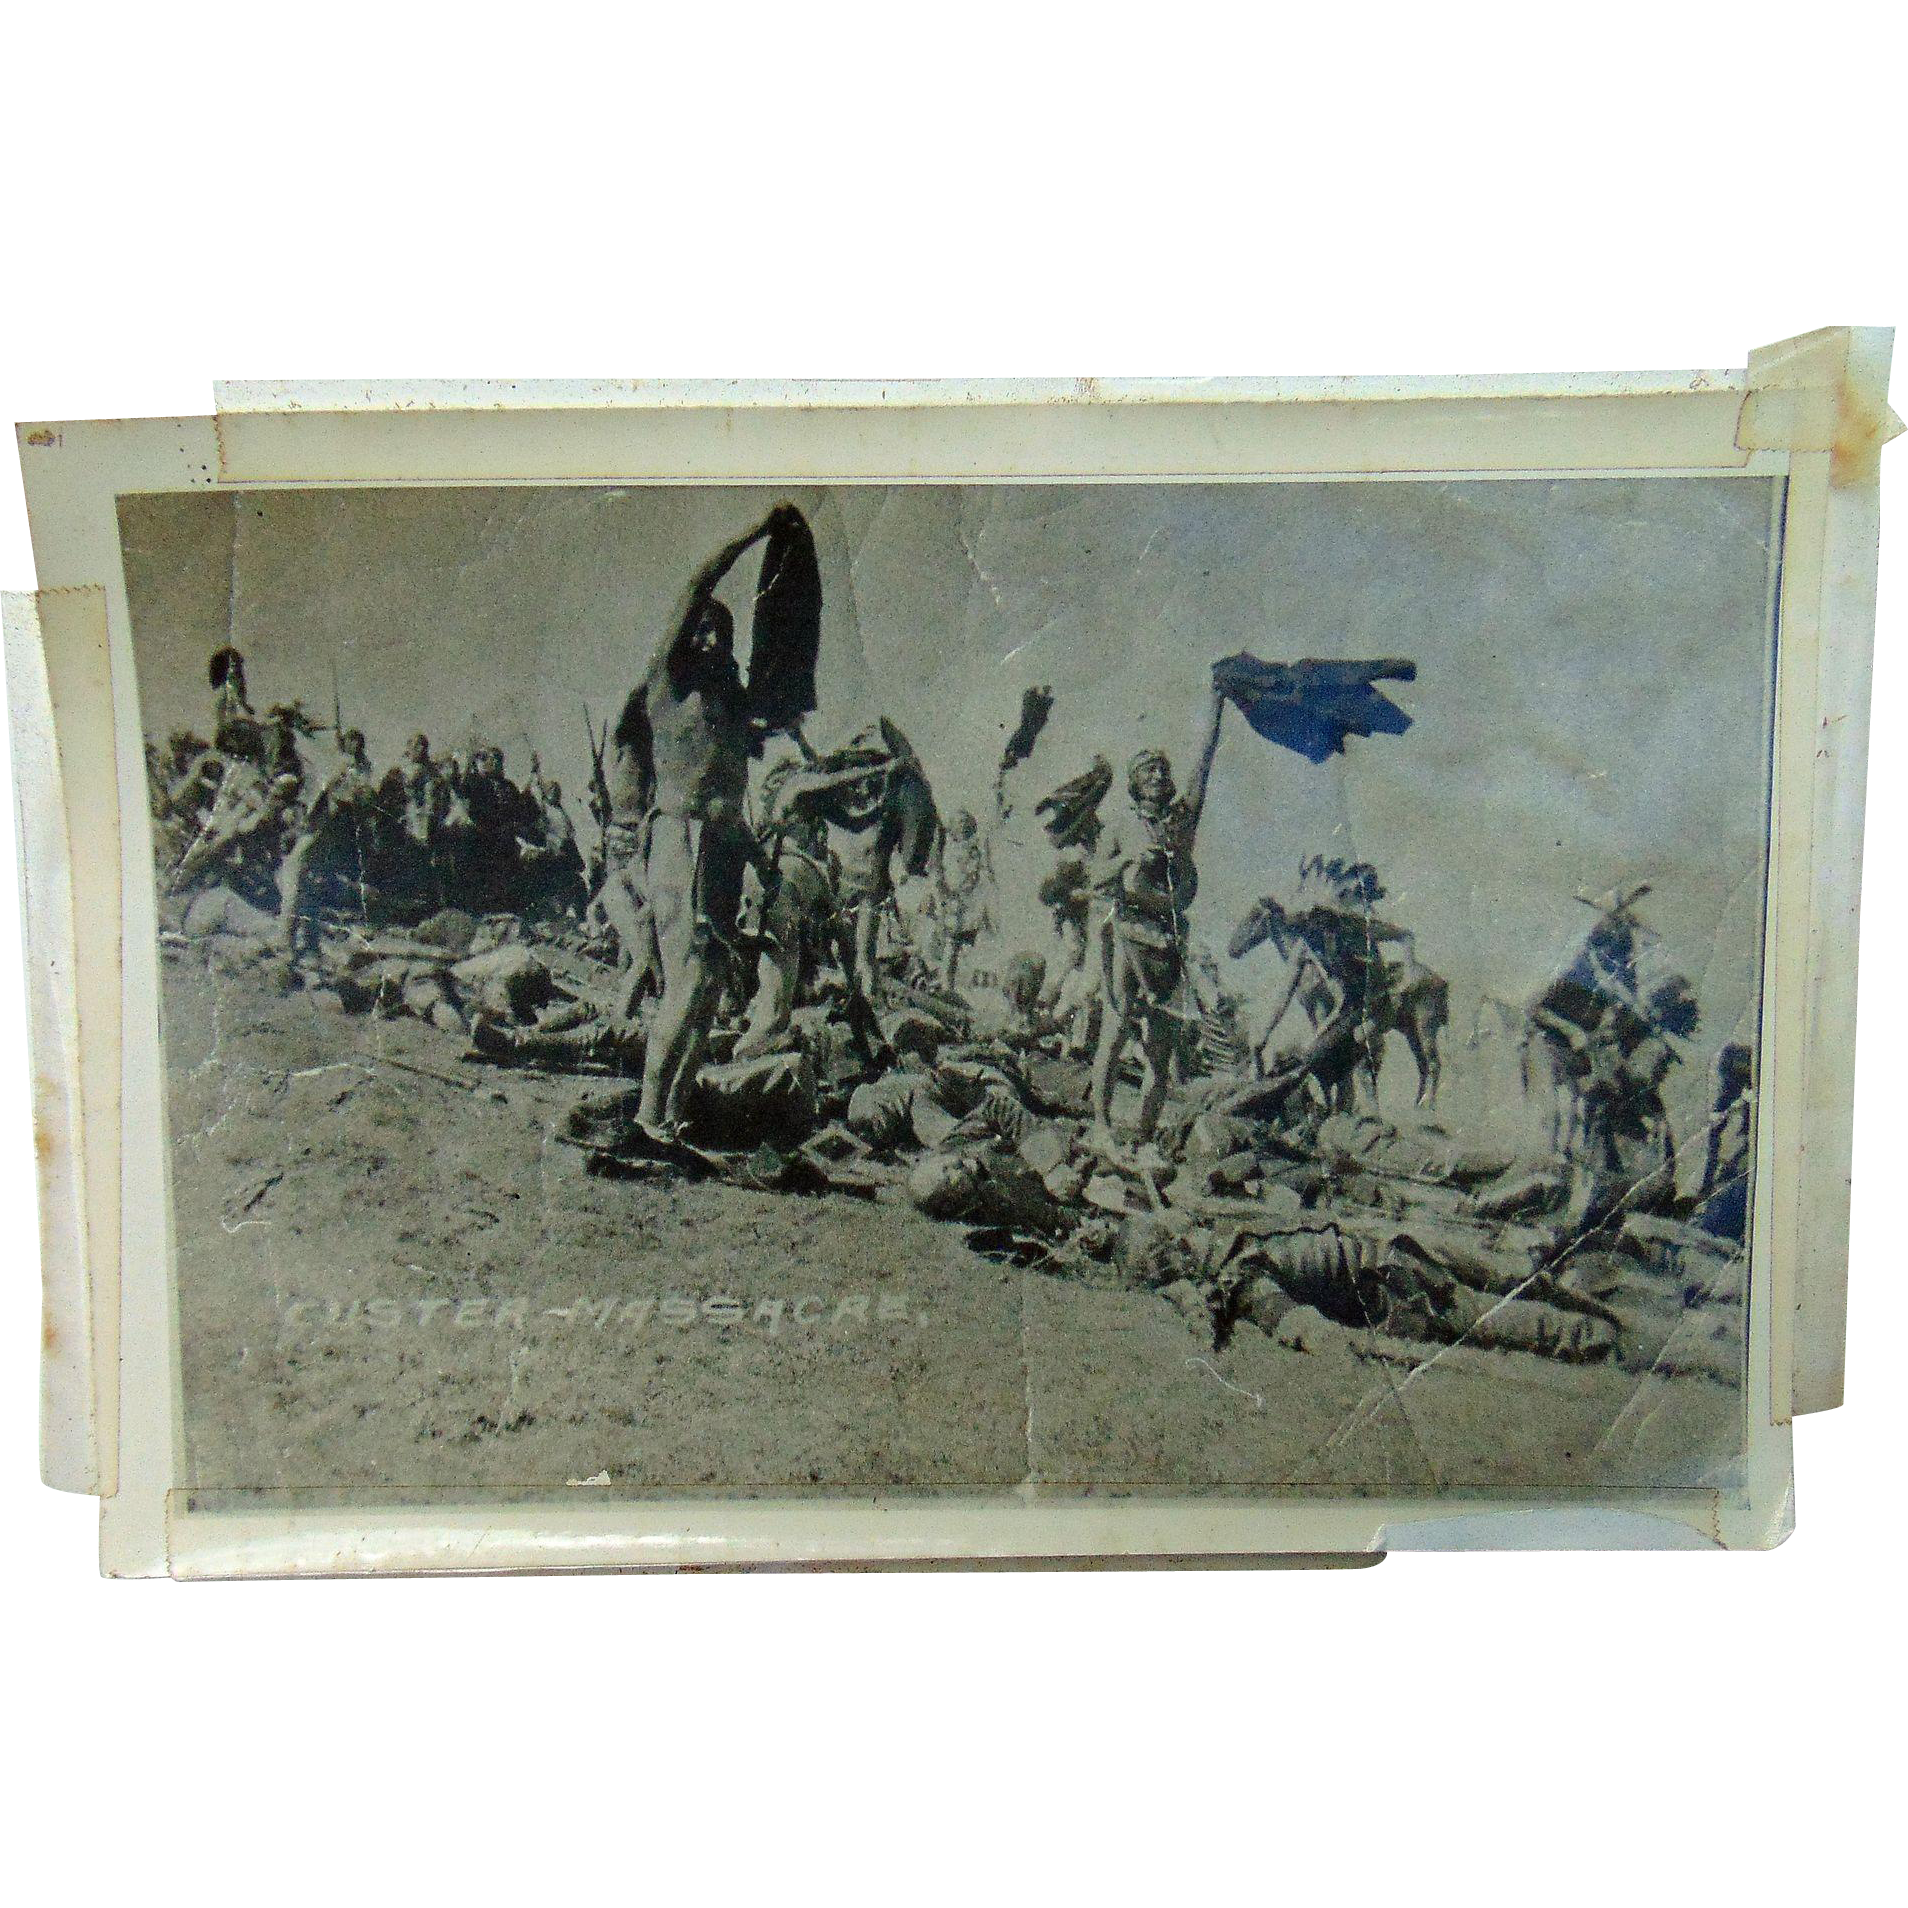 Little Big Horn Lakota Sioux and Cheyenne Warriors Scalping Custer & 7th Calvary